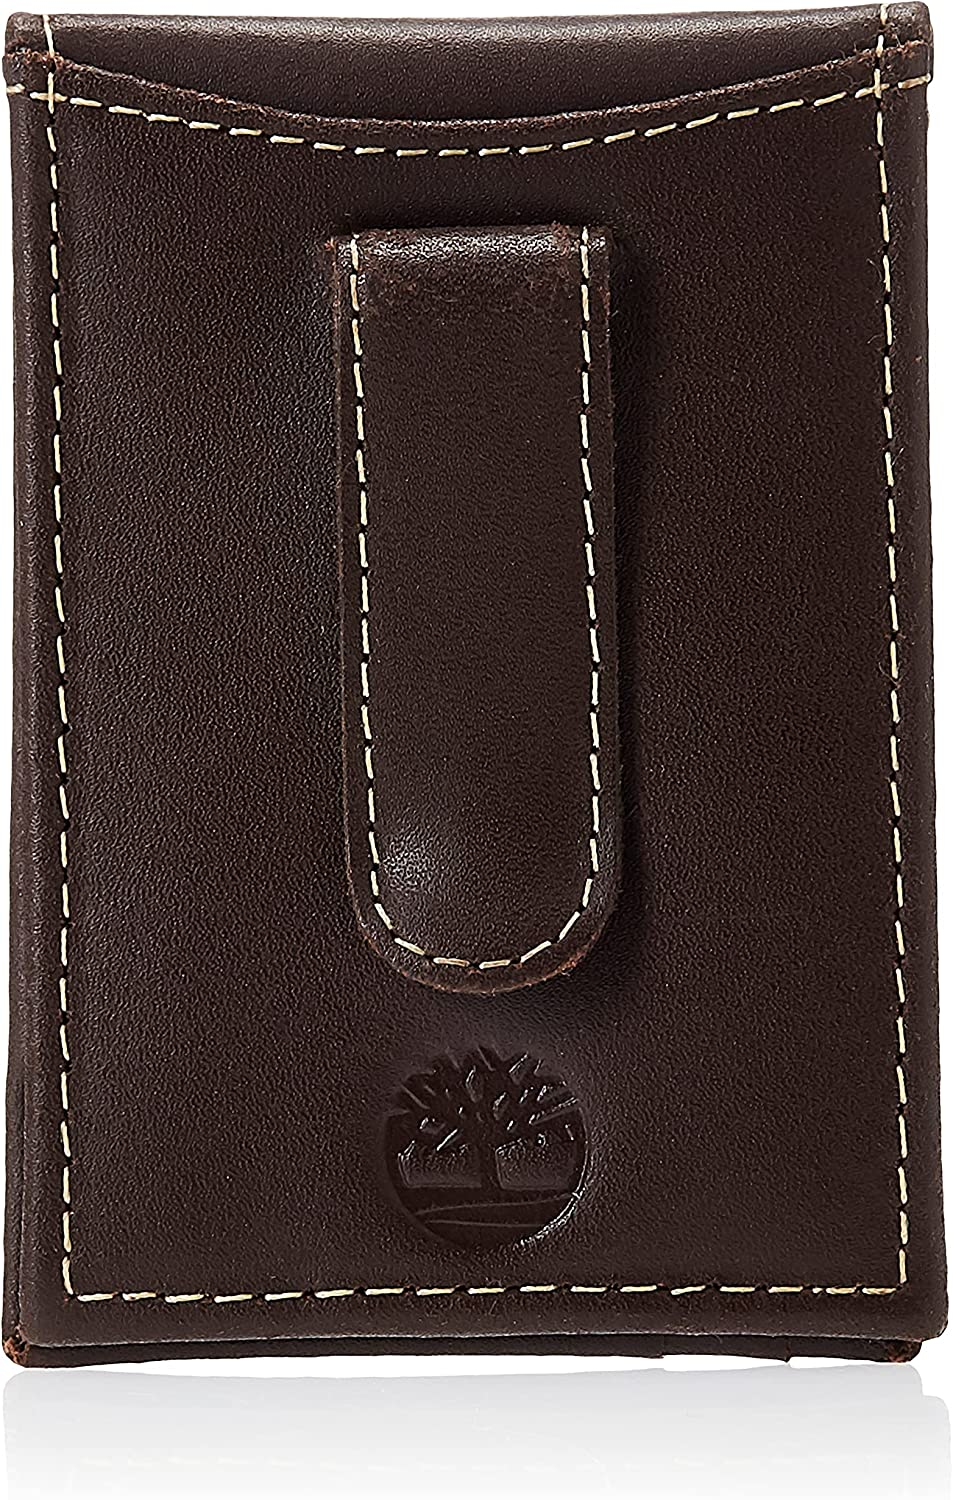 Timberland Men's Minimalist Front Pocket Slim Clip Wallet Shipping included Money San Diego Mall